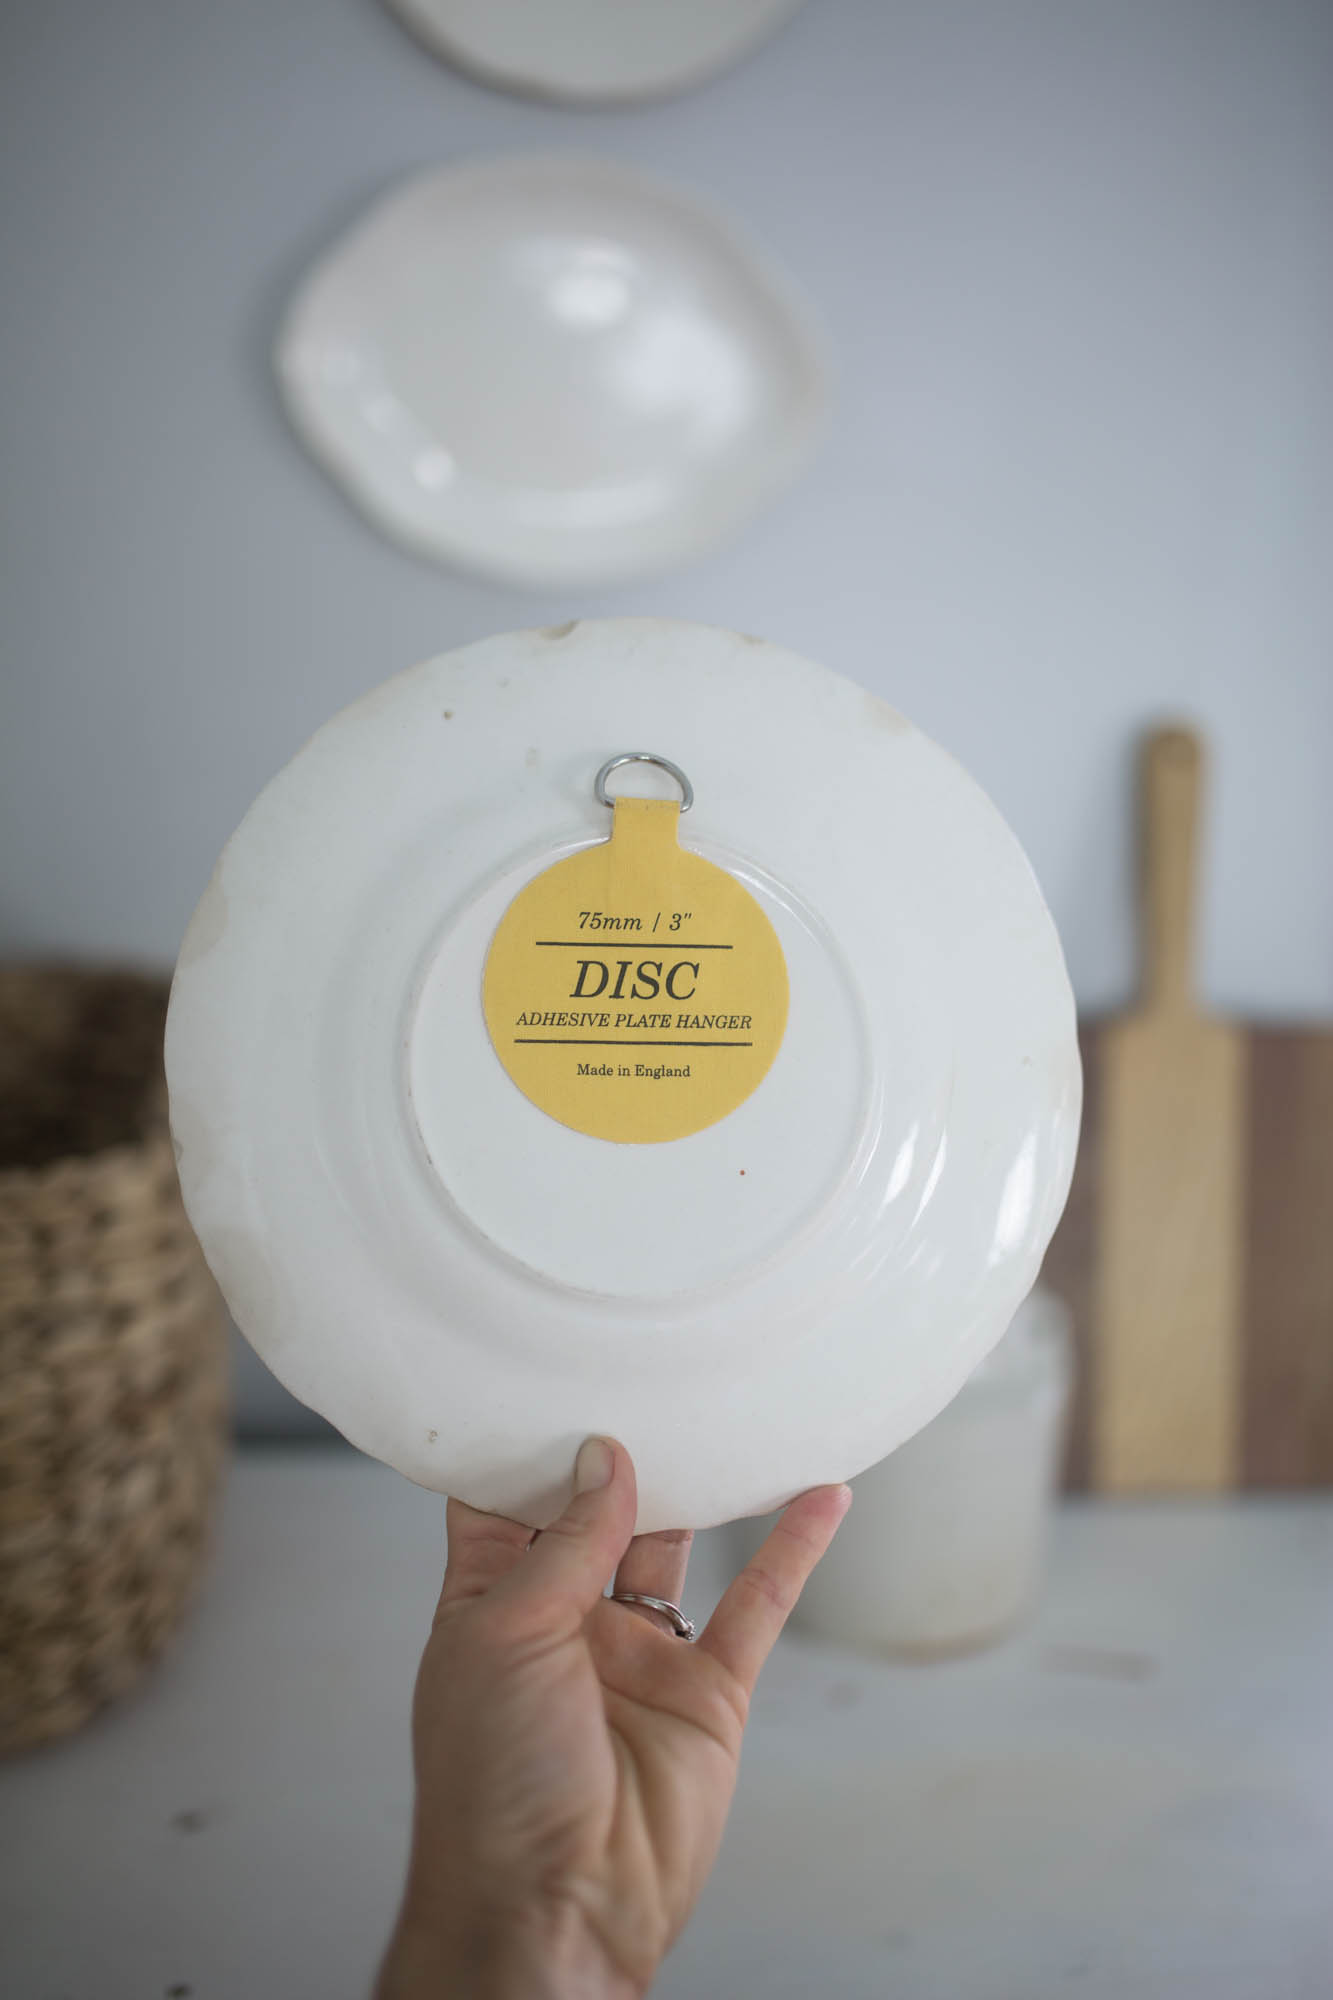 How to Hang Plates on a Wall Using Adhesive Plate Discs